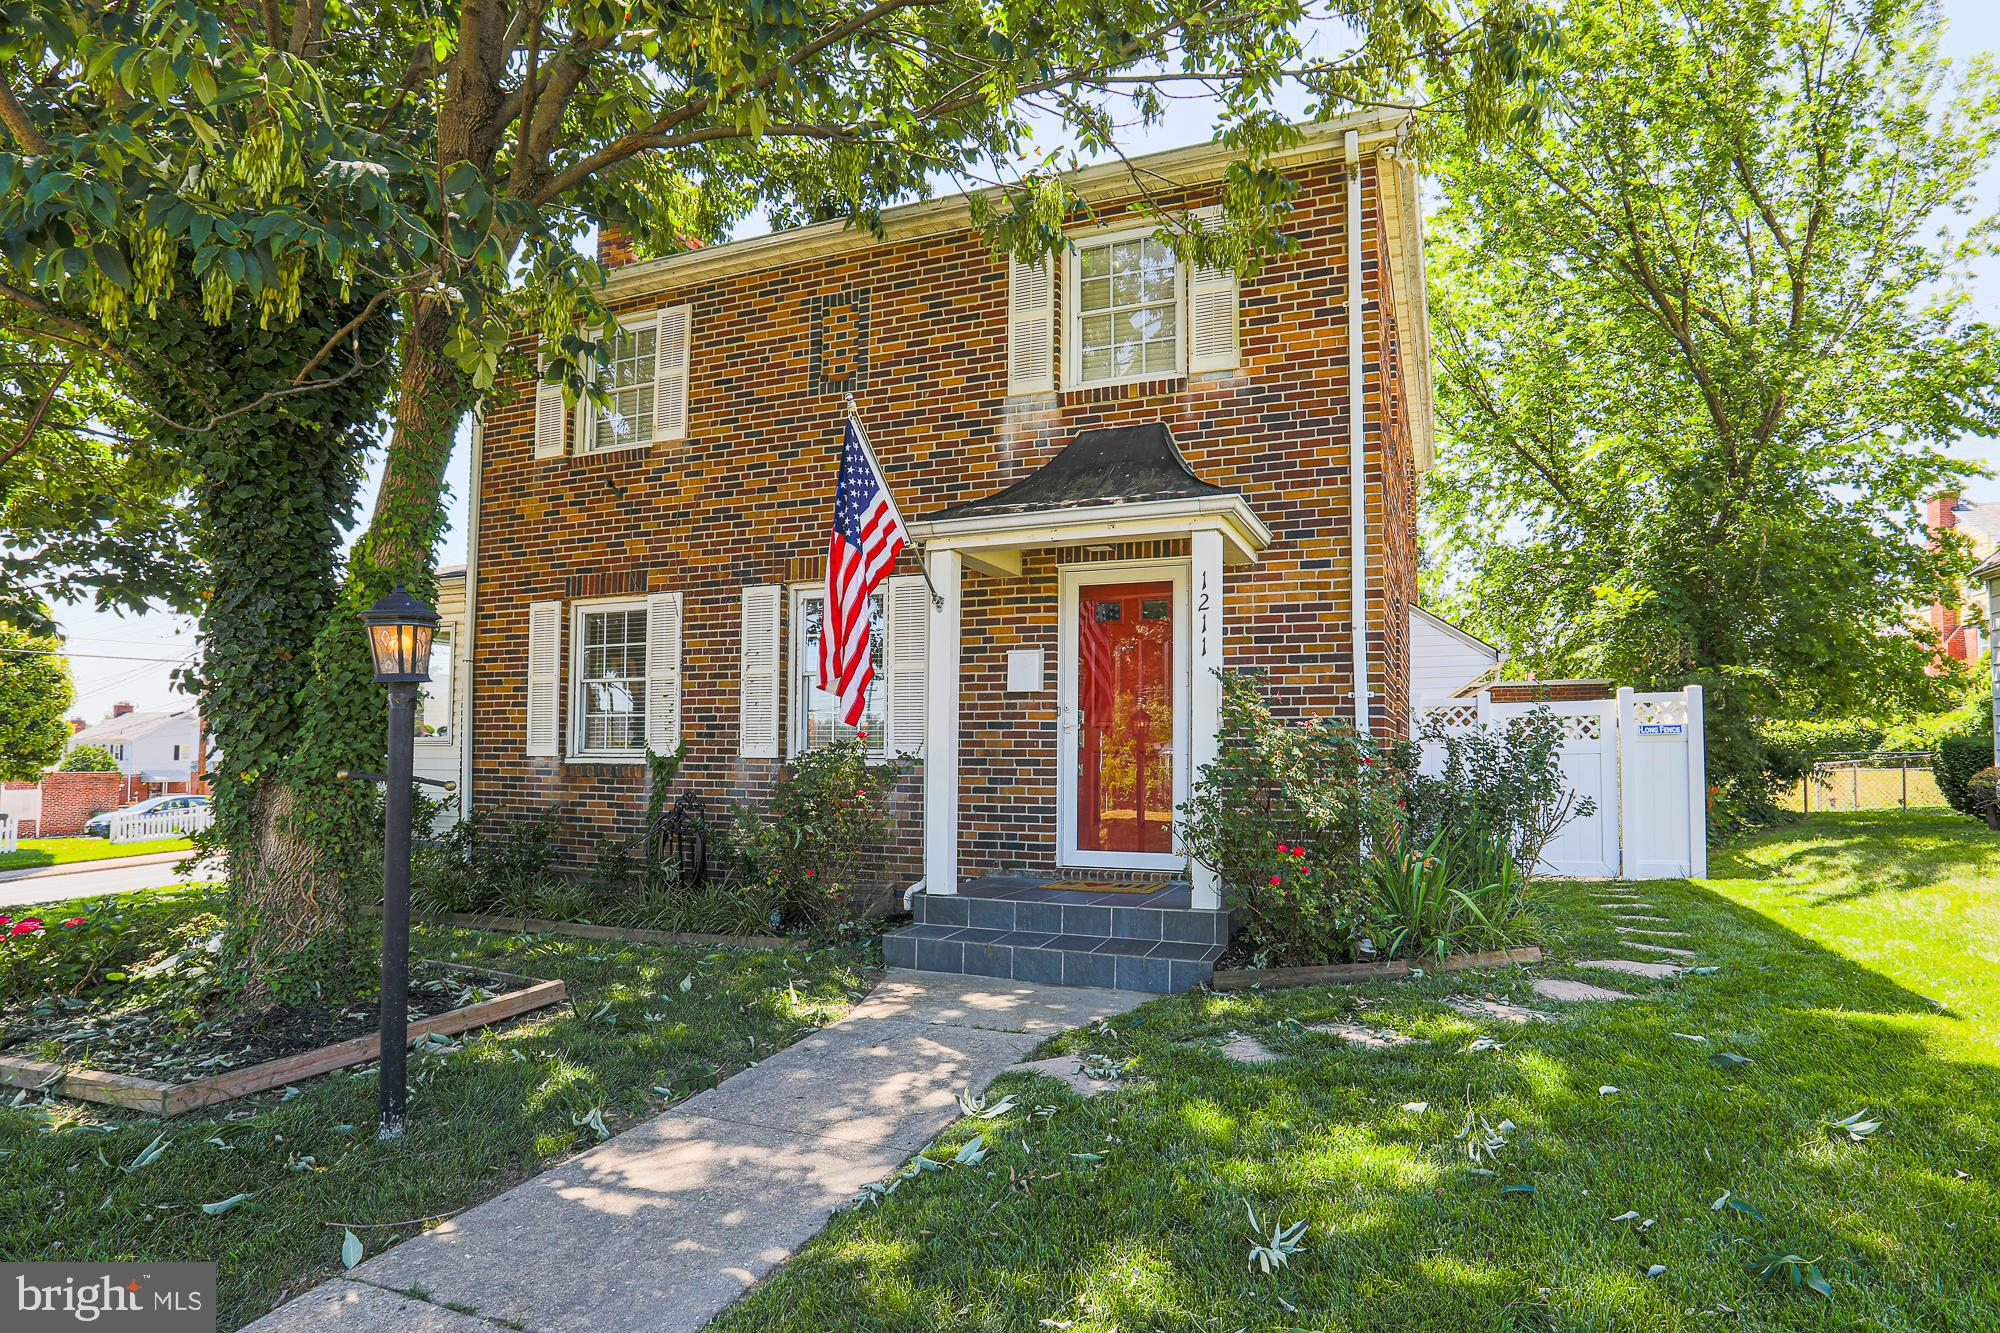 Located in the quiet and established Ednor Gardens neighborhood close to the city center, this 3BR/2.5BA home has everything you need! Sun-filled rooms with beautiful wood floors, updated kitchen with stainless steel appliances, wood-burning fireplace in the living room, large back yard with fenced area for pets and more. You'll love living in this beautiful home with all the modern features you've been dreaming about!